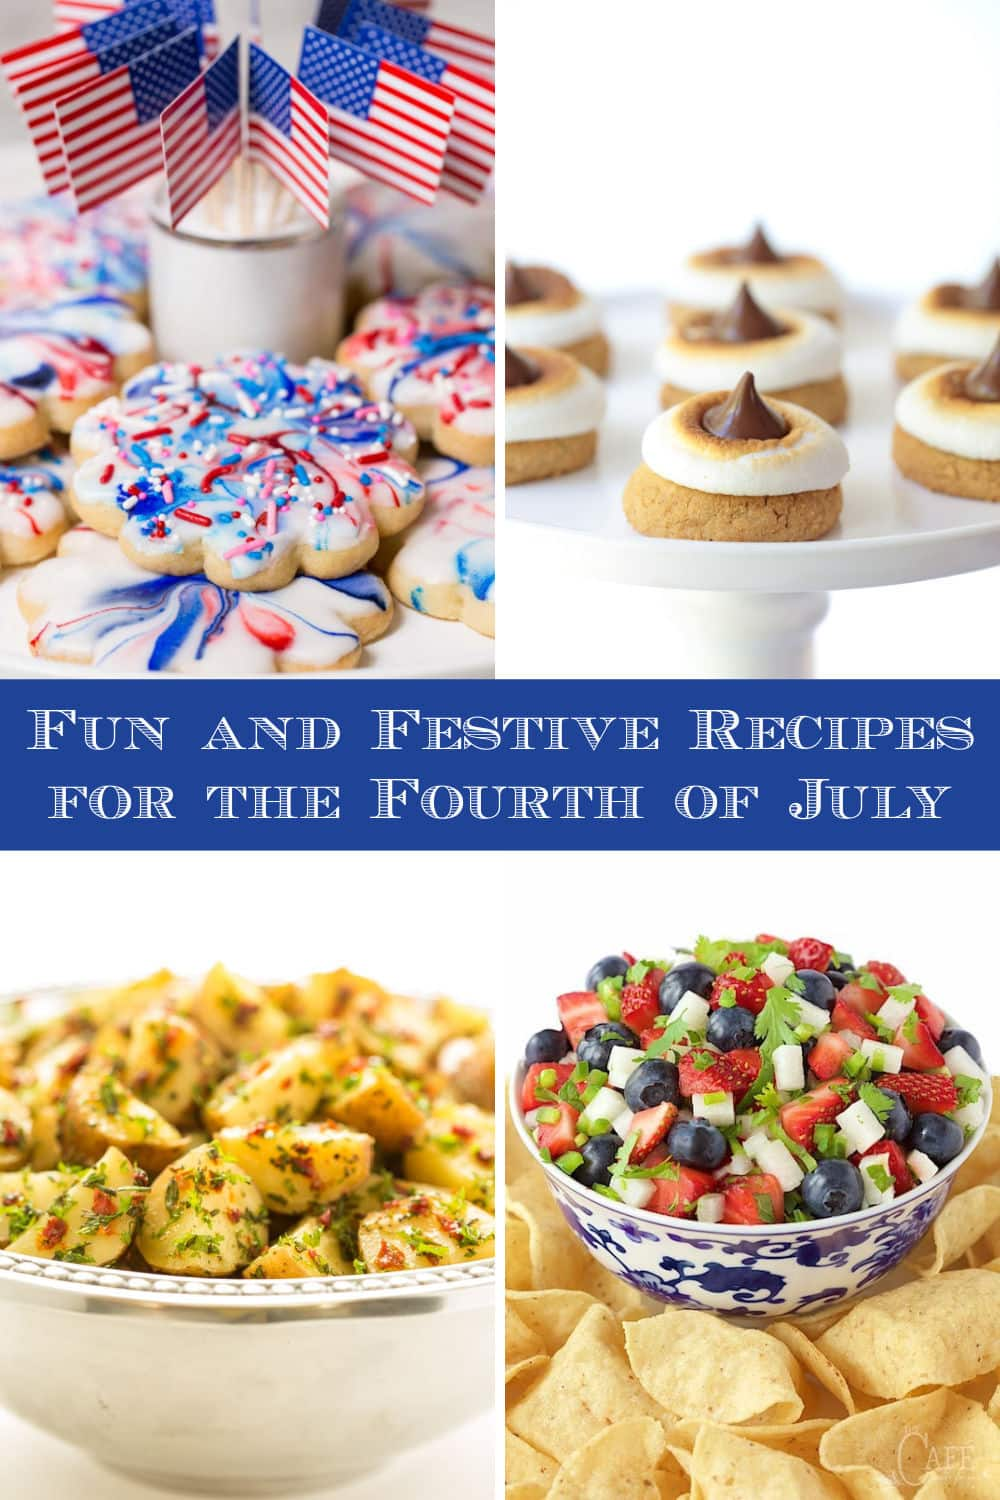 Celebrate the Fourth of July in Style with these Easy, Delicious Recipes!